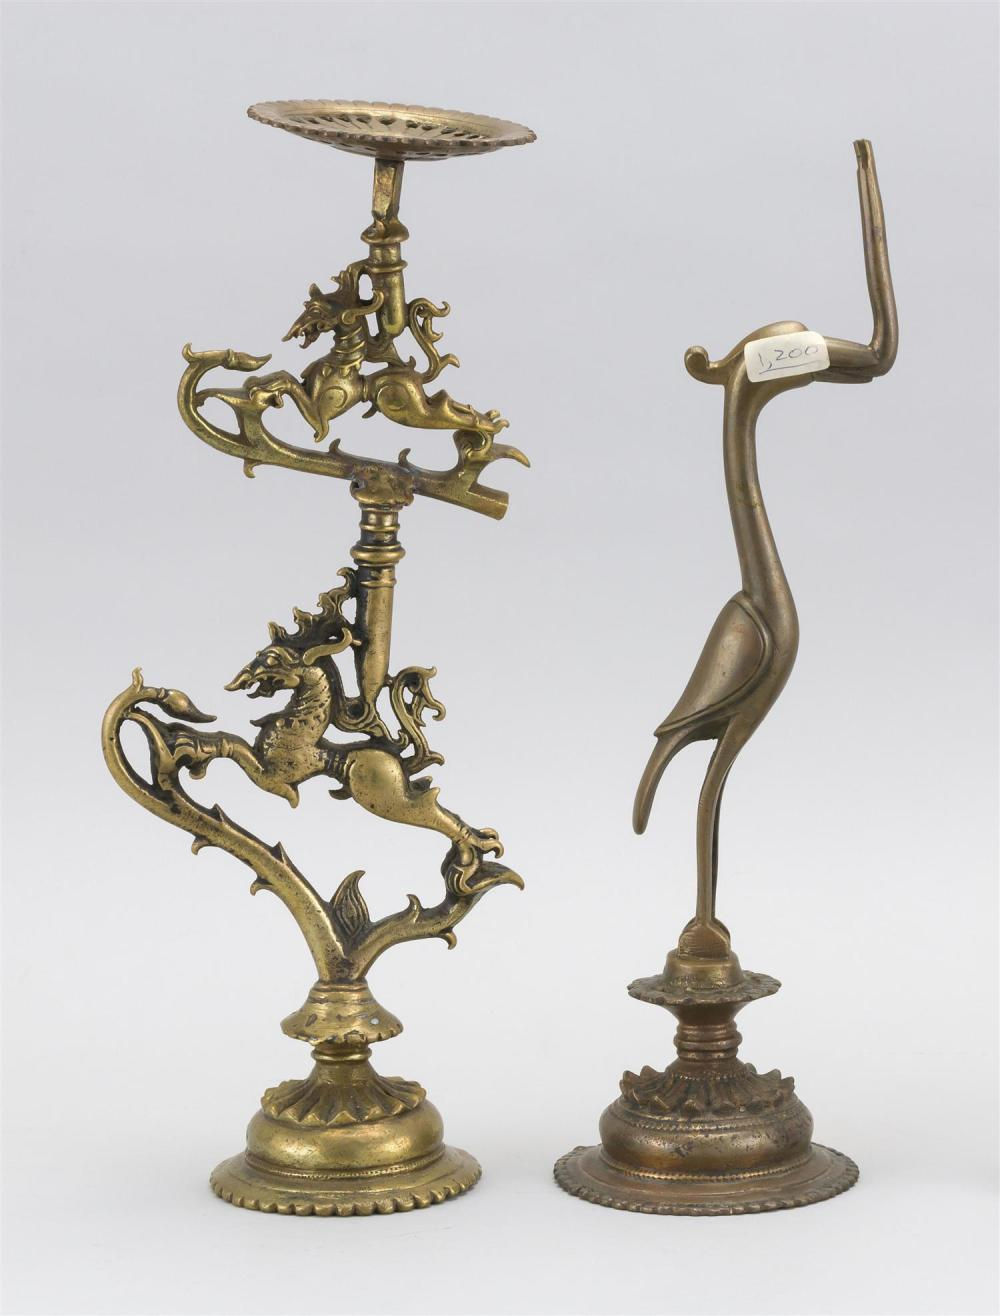 "Lot 948: TWO PIECES OF INDIAN METALWARE A bronze altar stand in a horse-like creature design, height 13"", and a bird-form base for an altar s..."